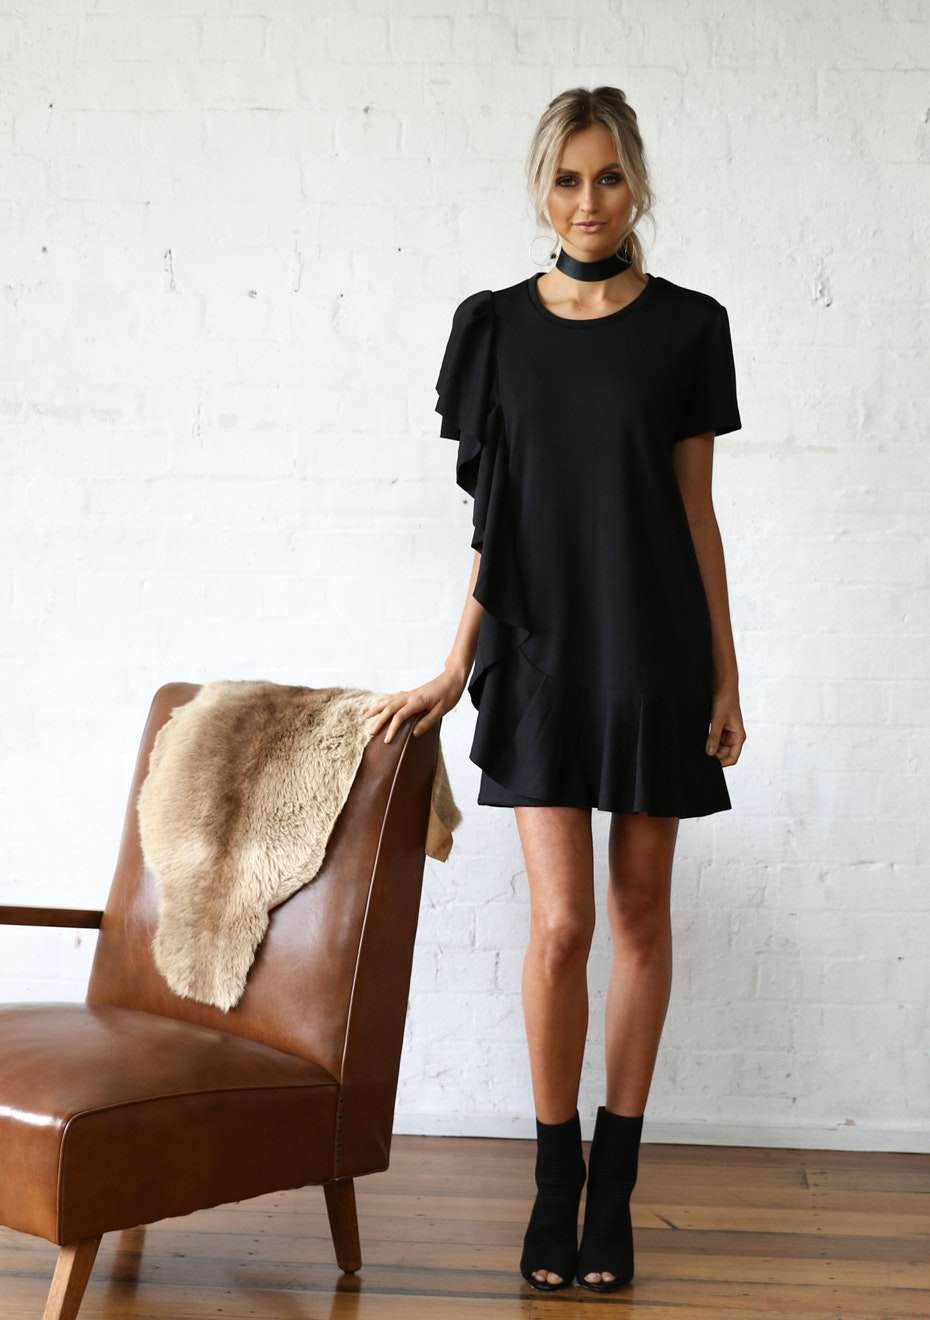 Madison - SLOW DANCE TEE DRESS - BLACK